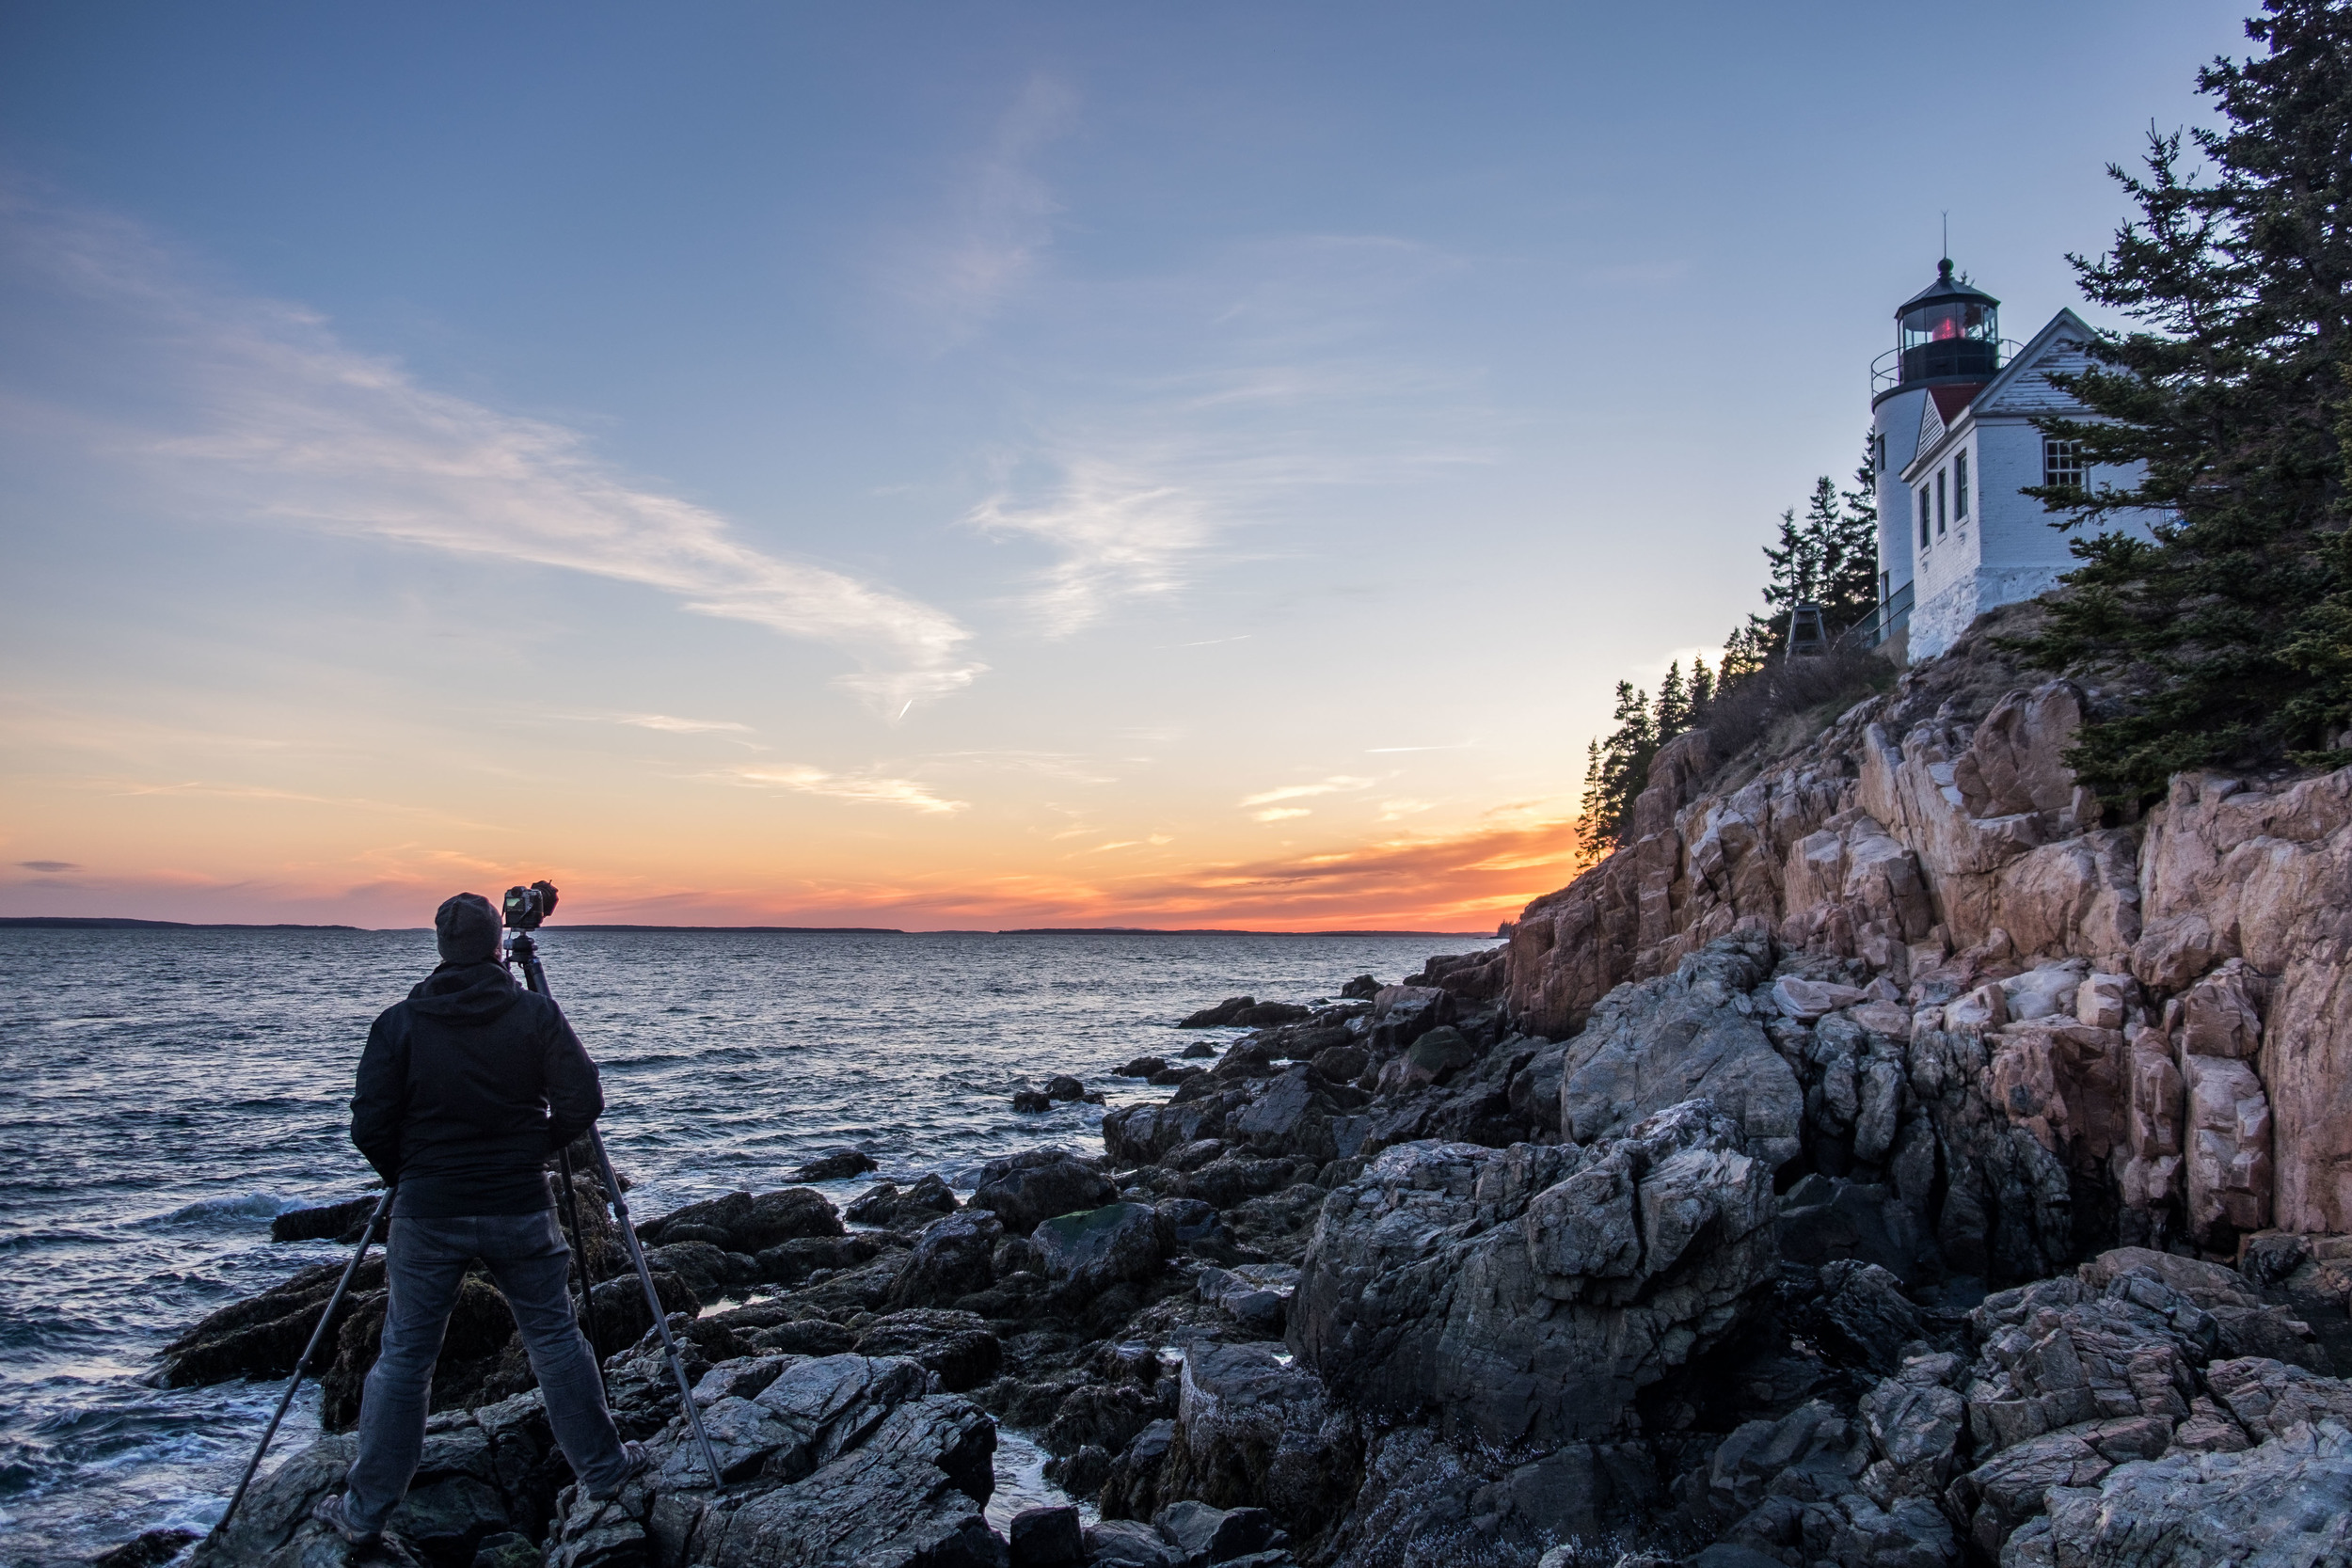 Jonathan shooting the Bass Harbor Lighthouse in Acadia National Park in Maine at sunset.